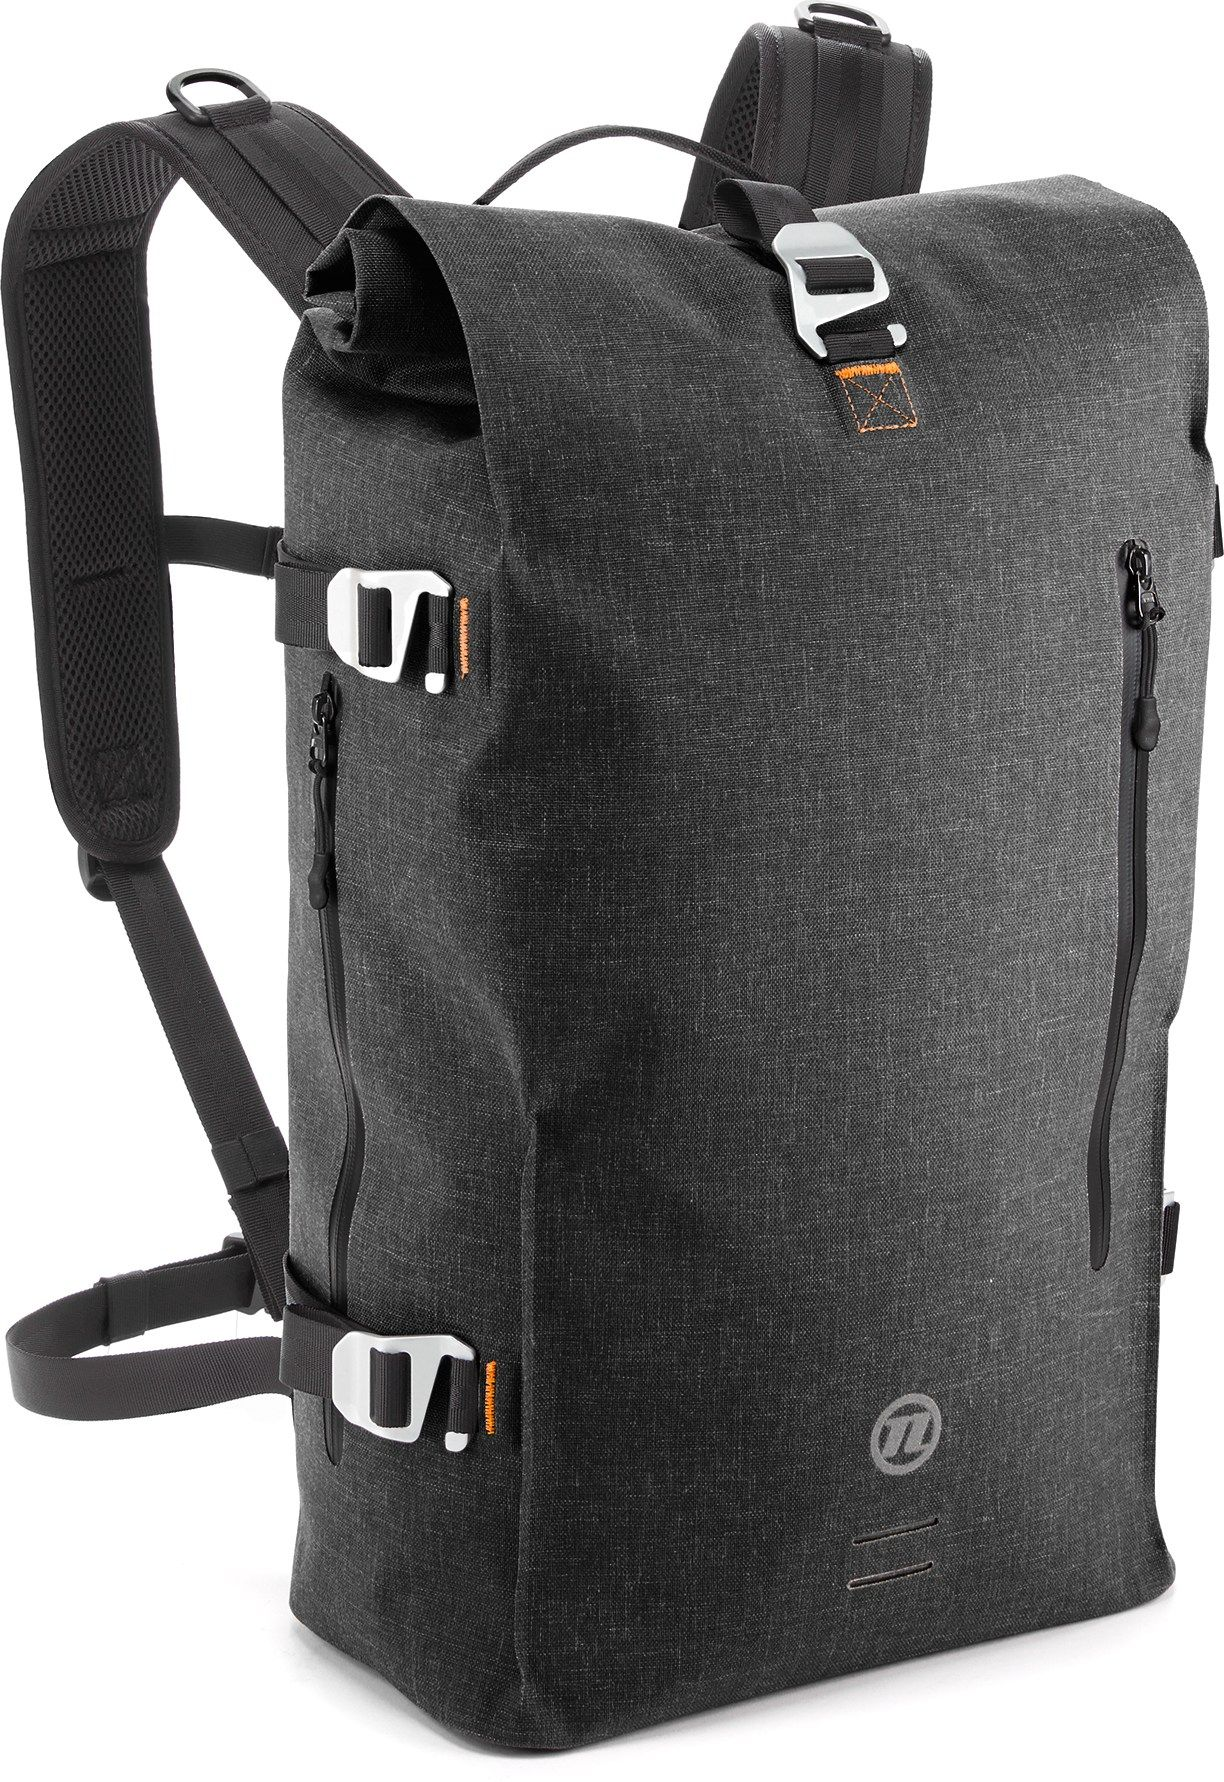 e7420a6522 Novara Dutchtown Bike Backpack - REI.com